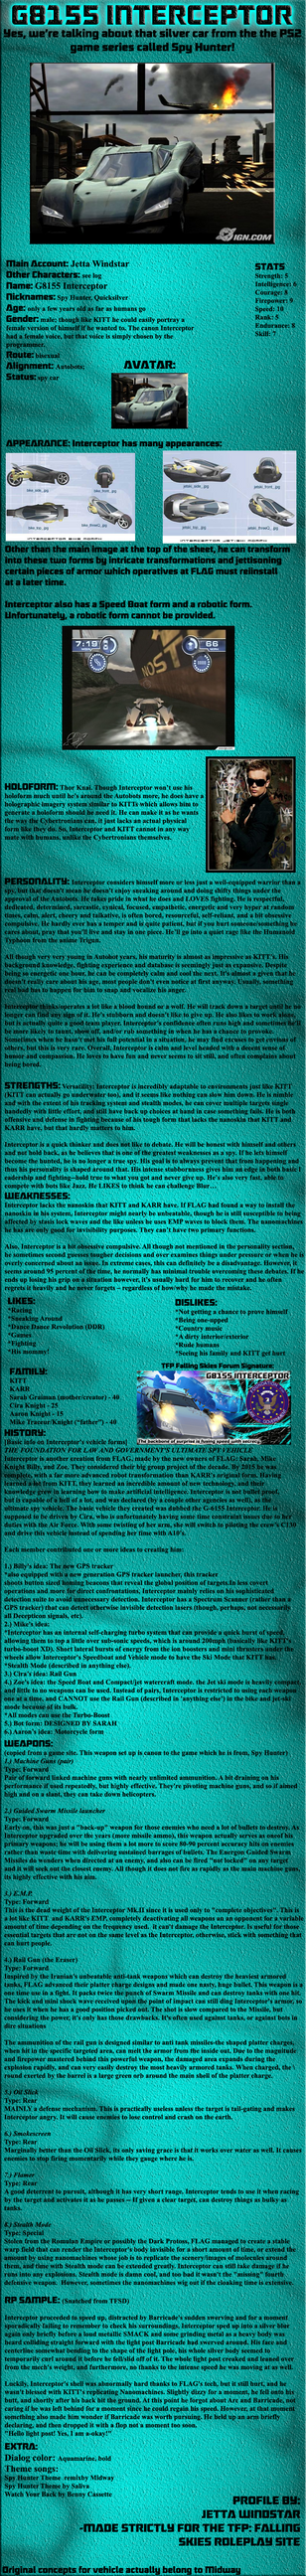 Interceptor: Falling Skies Image Bio by Jetta-Windstar